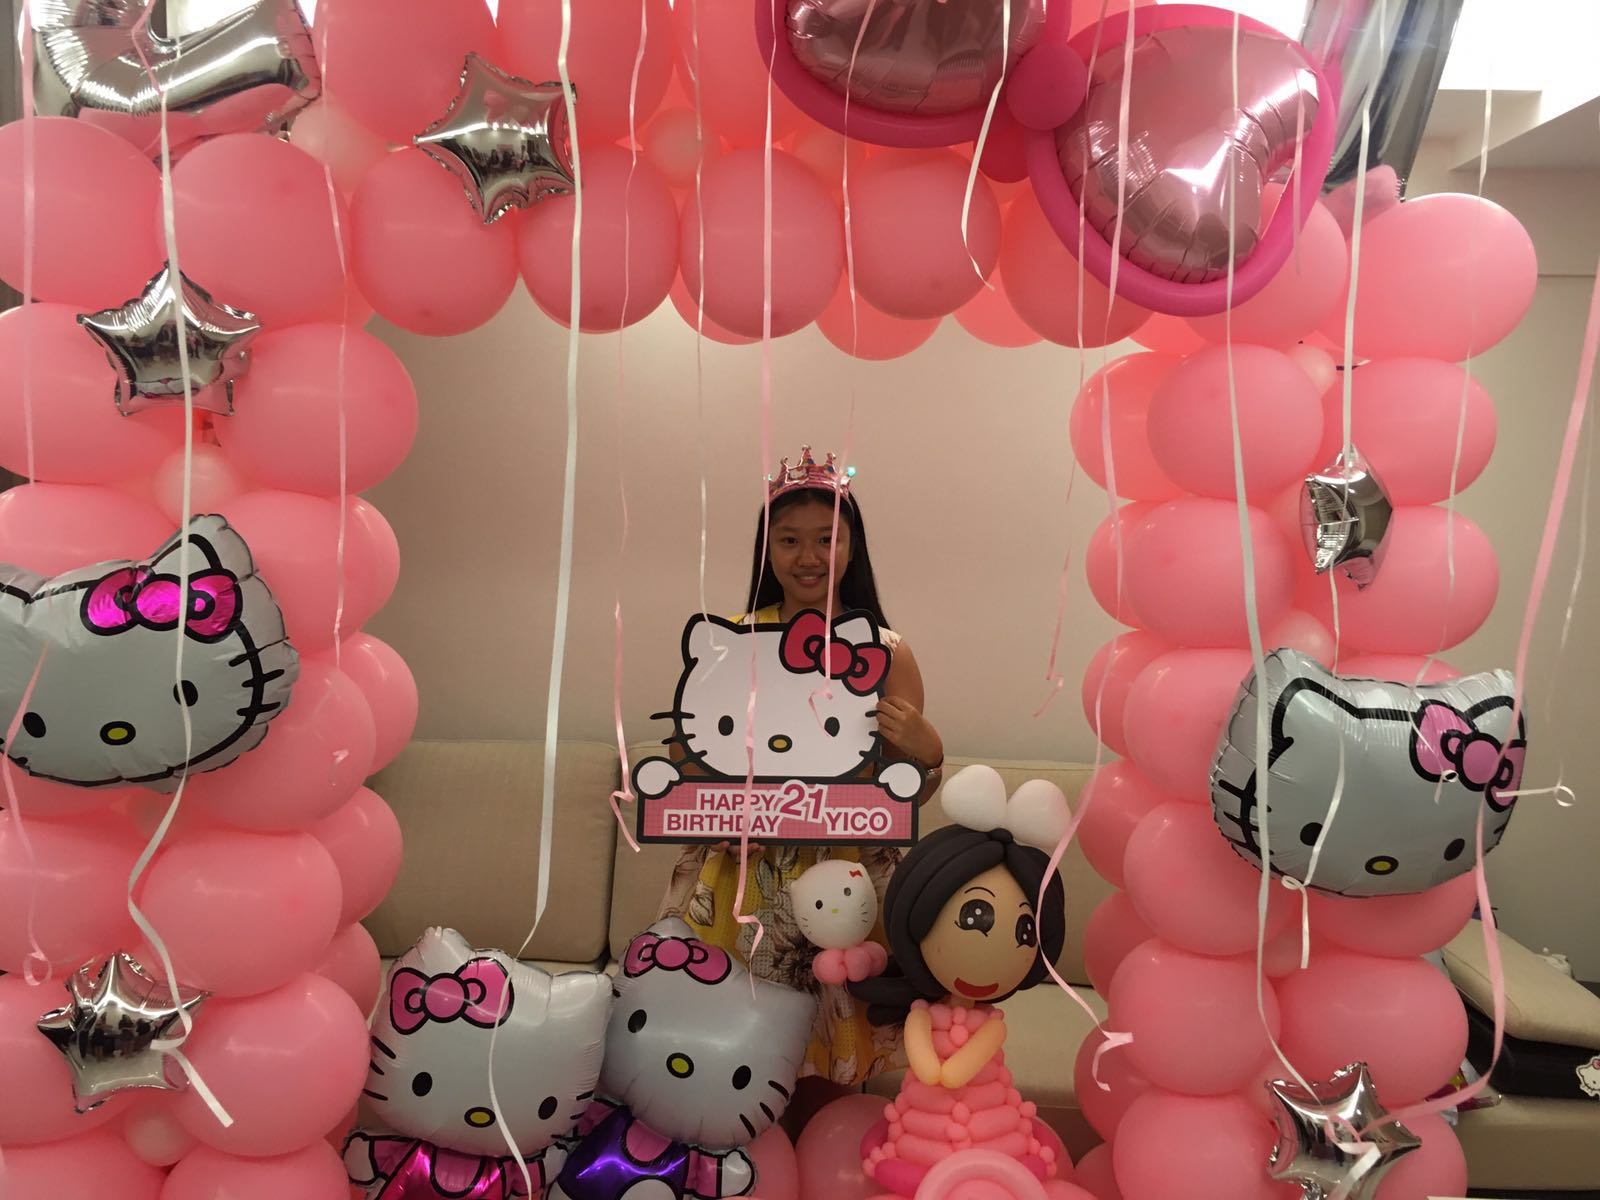 Hello Kitty Balloon Centerpiece Ideas : St birthday balloon decoration ideas image inspiration